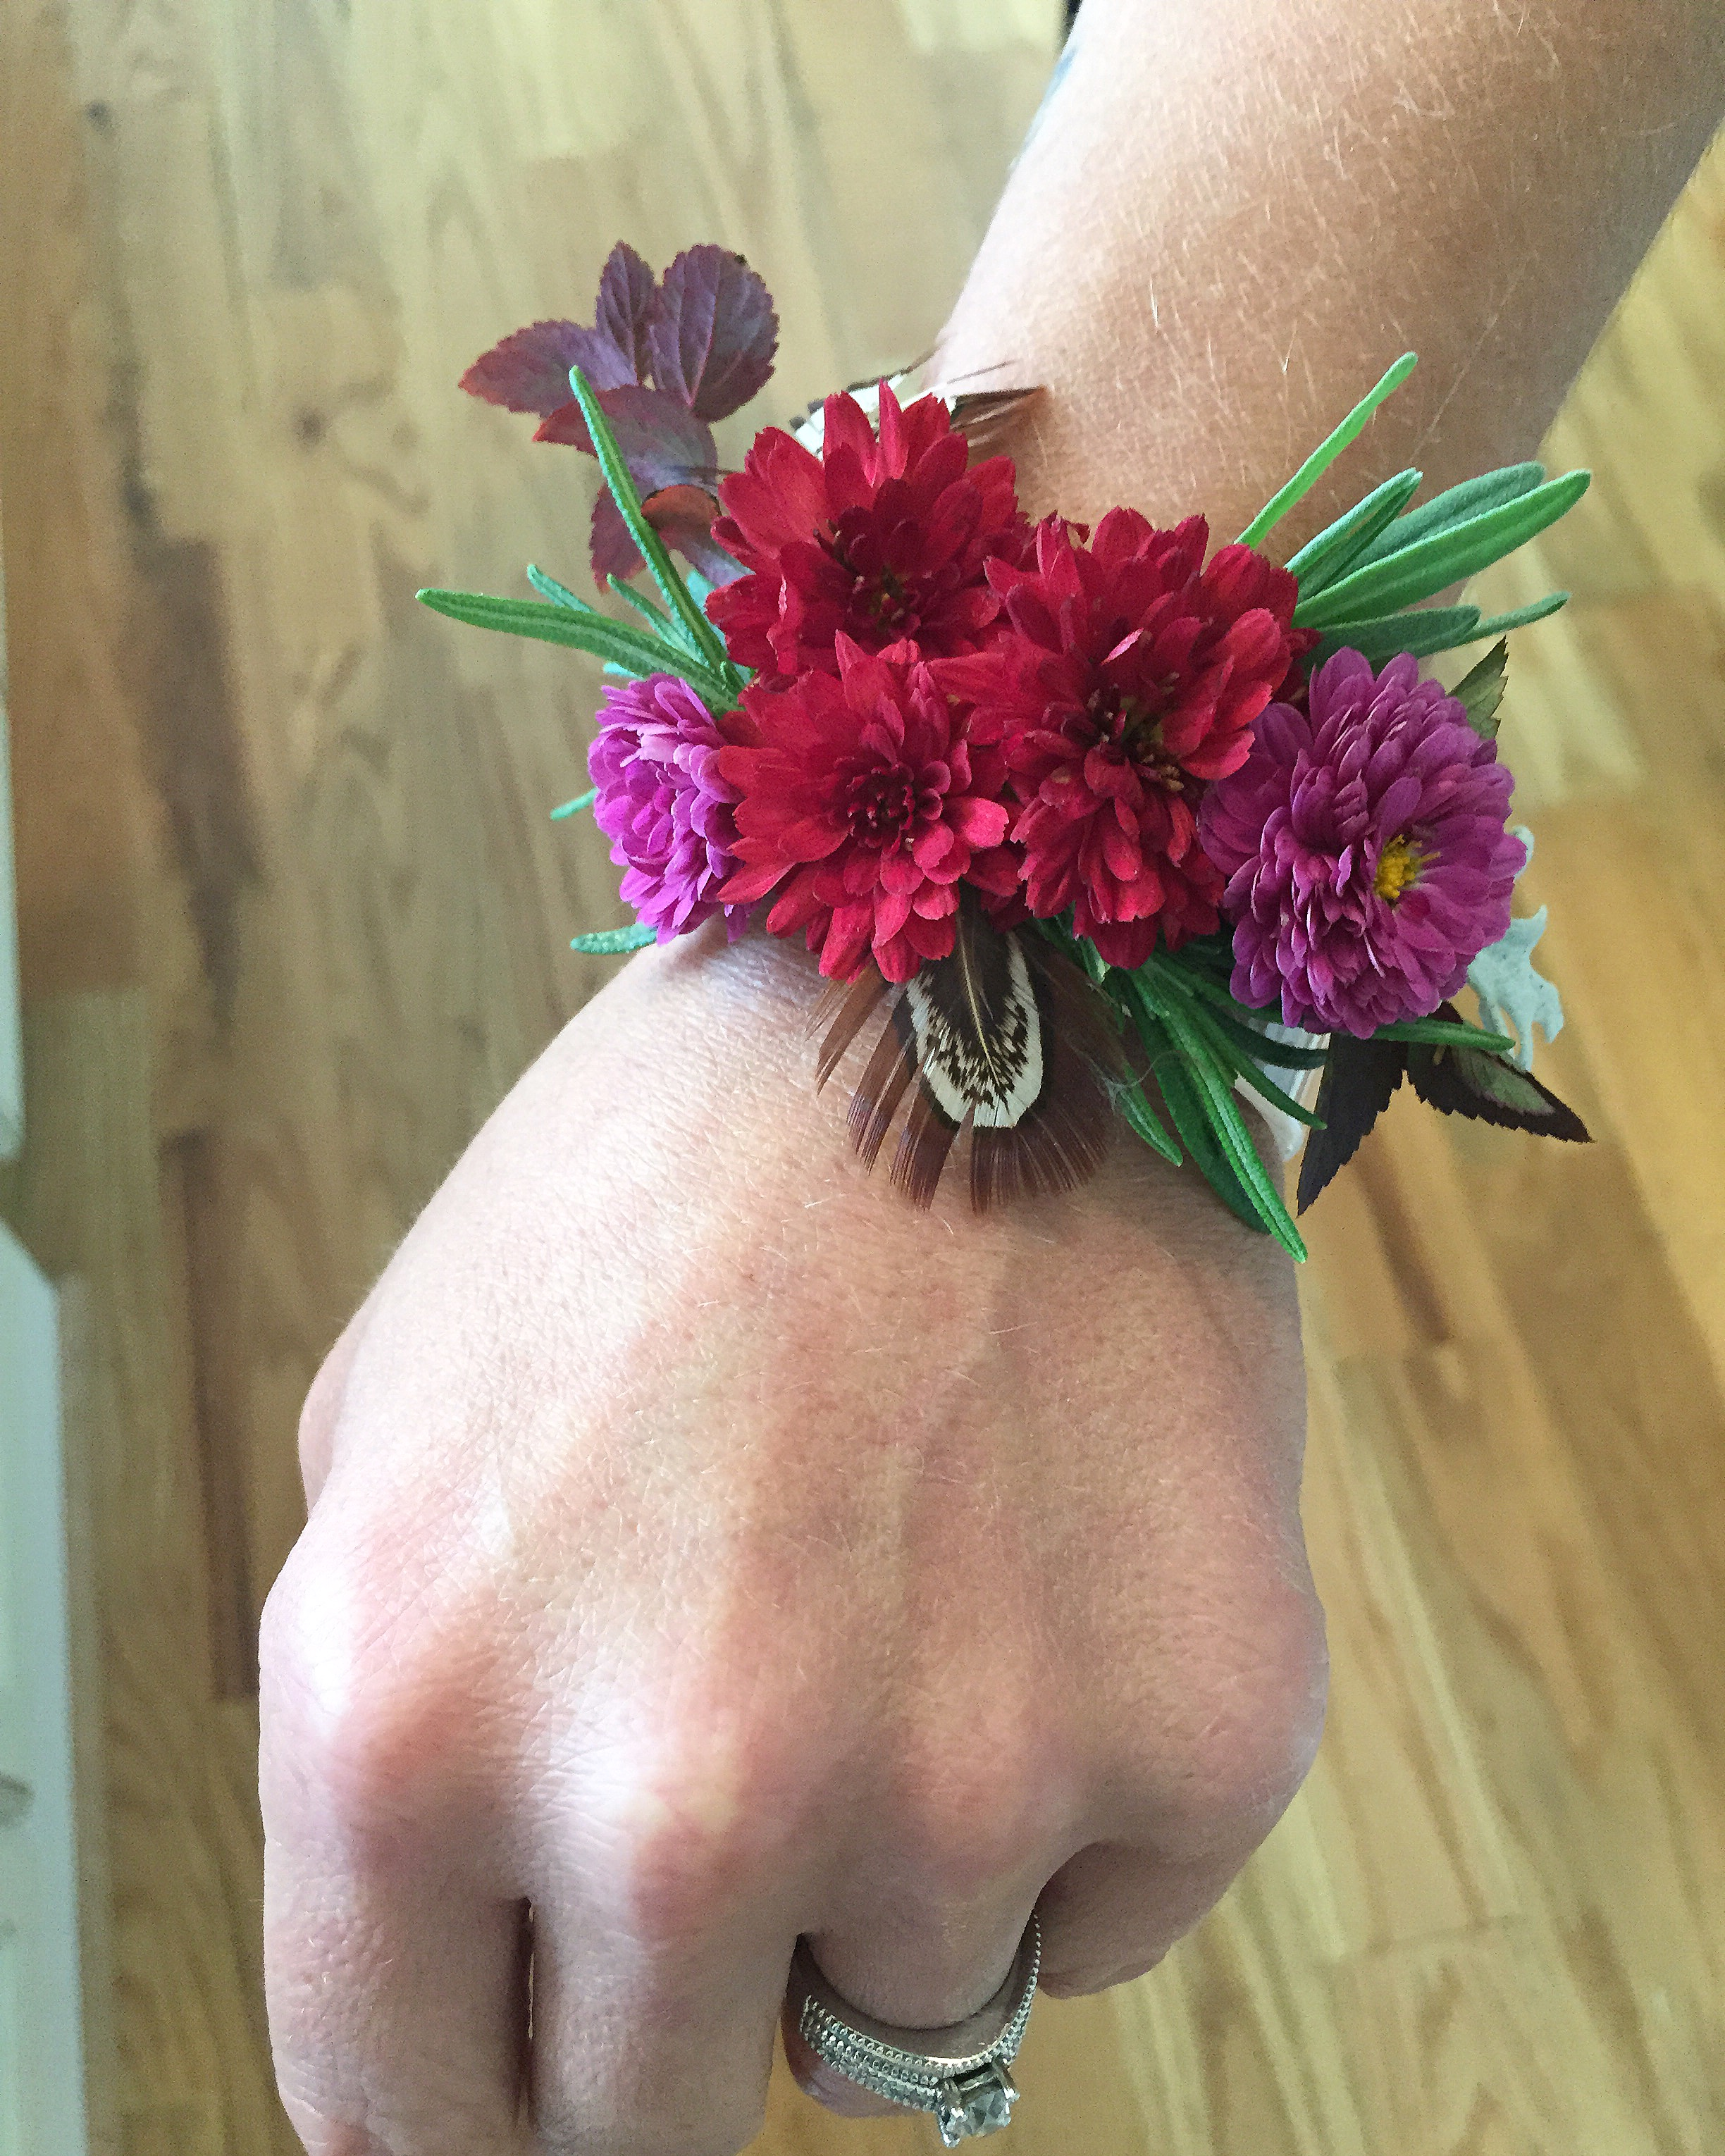 Floral bracelet designed by Westvirjeni with mums, rosemary, spirea, and grouse feathers.